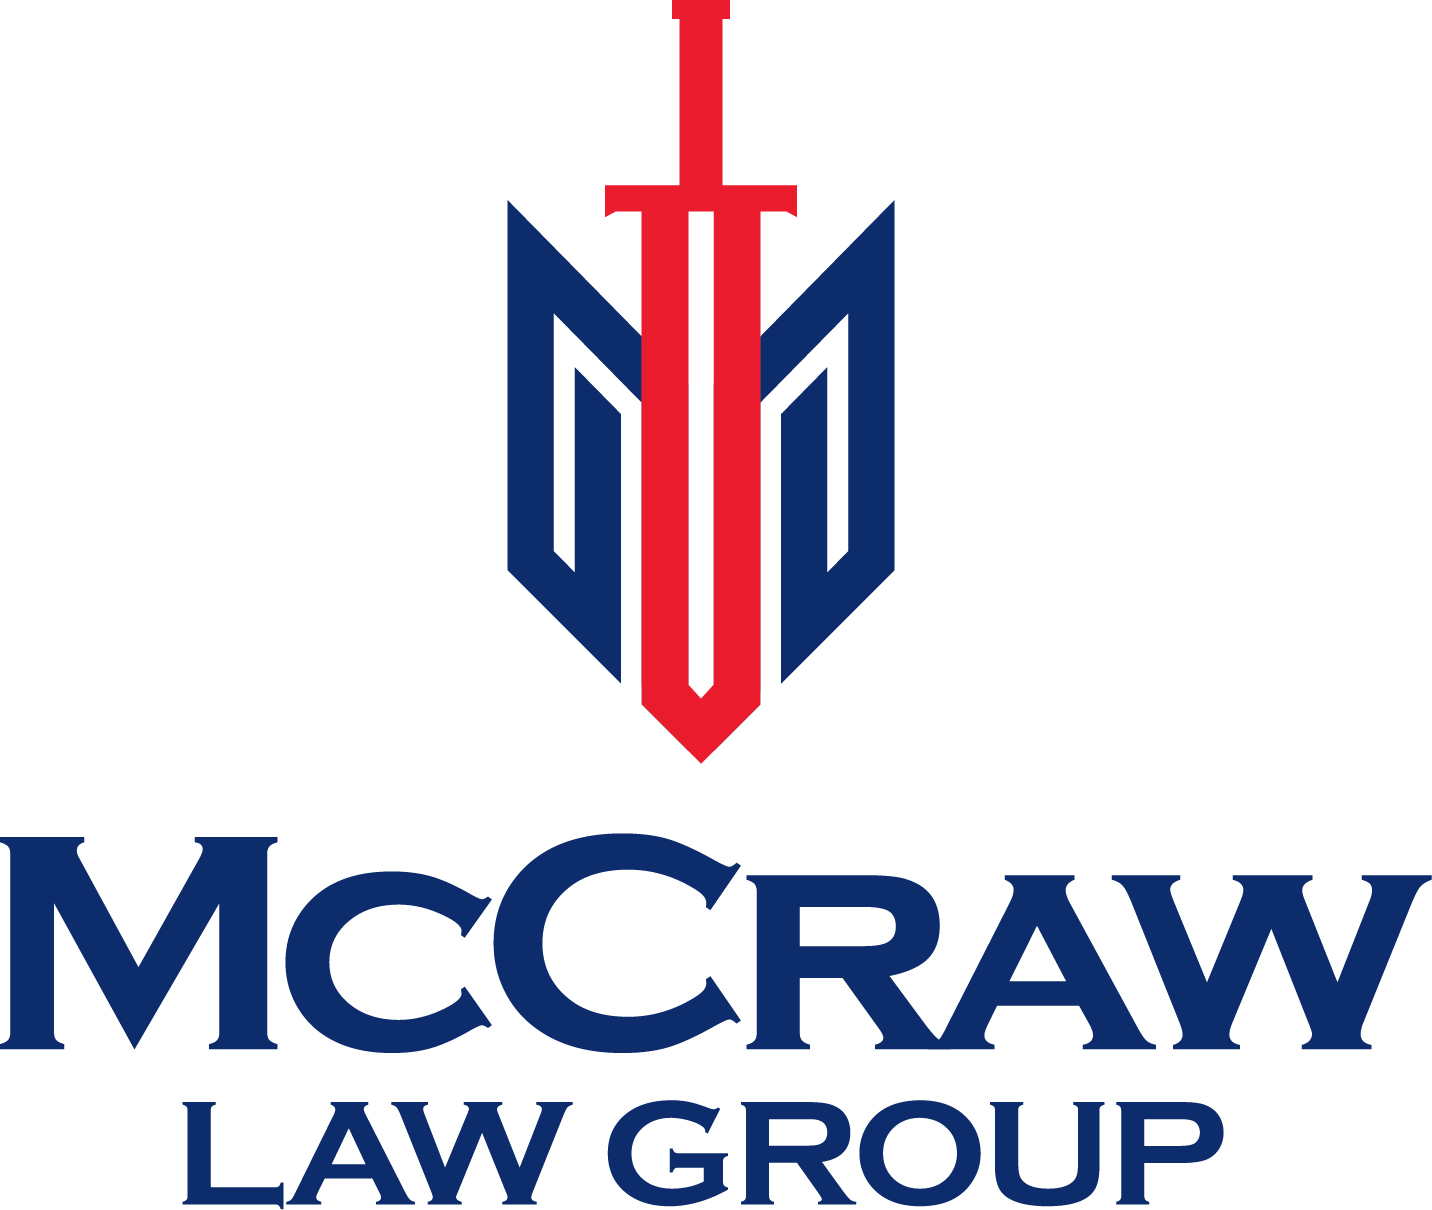 The McCraw Law Group reviews   Personal Injury Law at 1504 1st Ave - Mckinney TX